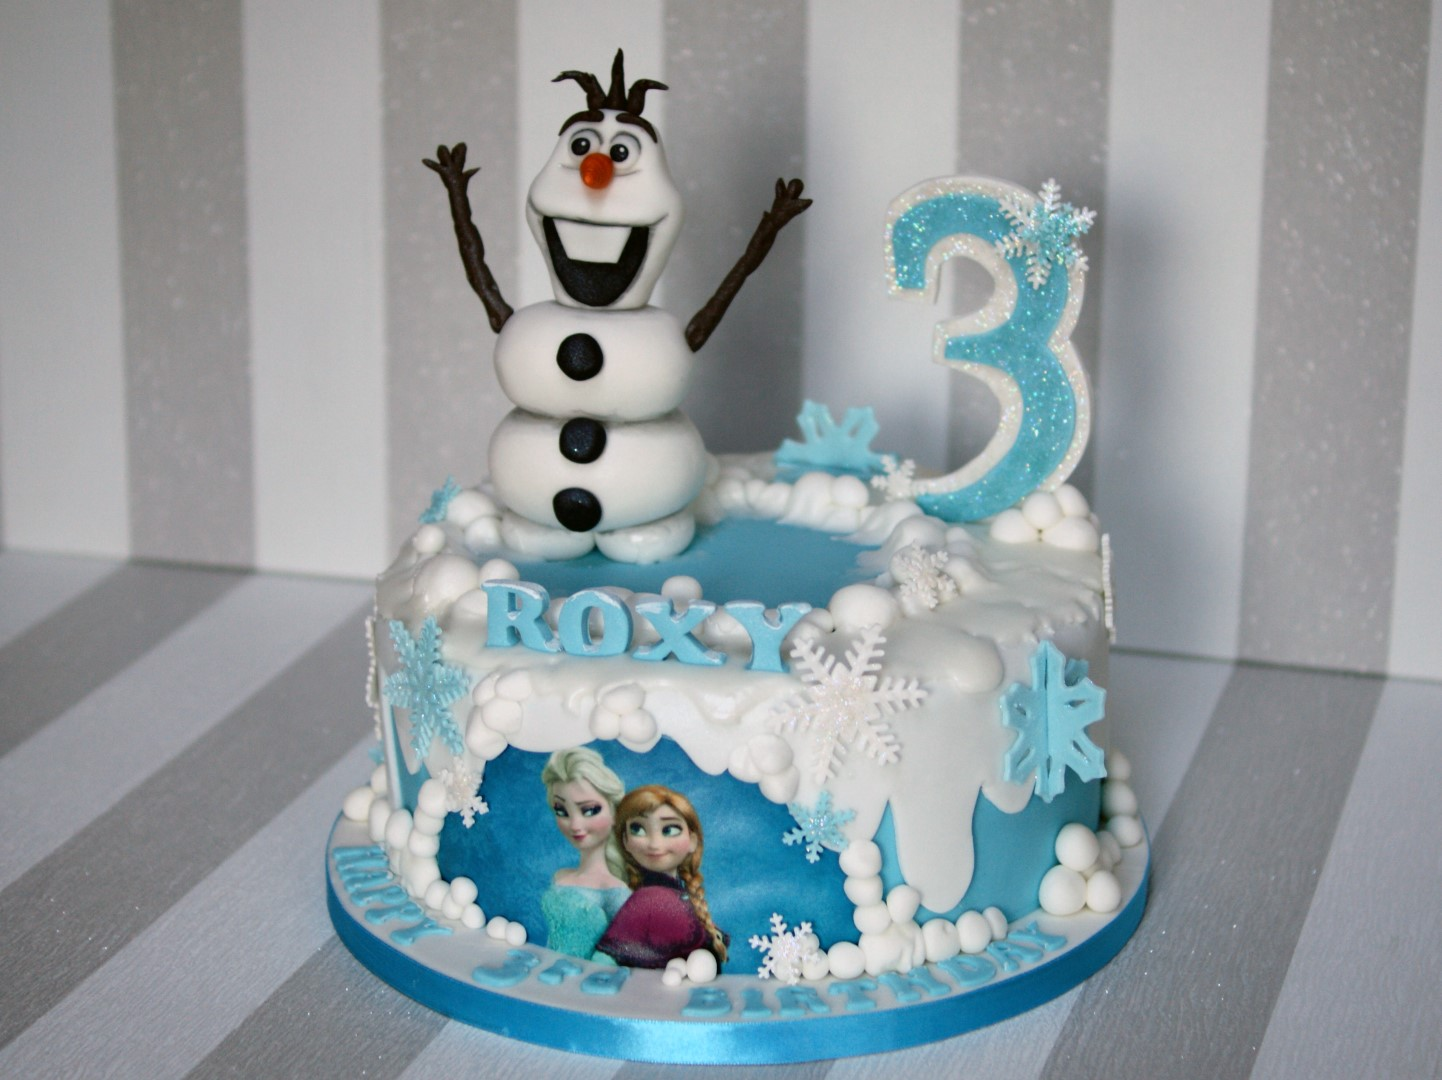 Birthday Cake Ideas Disney Frozen ~ Disney frozen cake olaf and elsa birthday bakealous